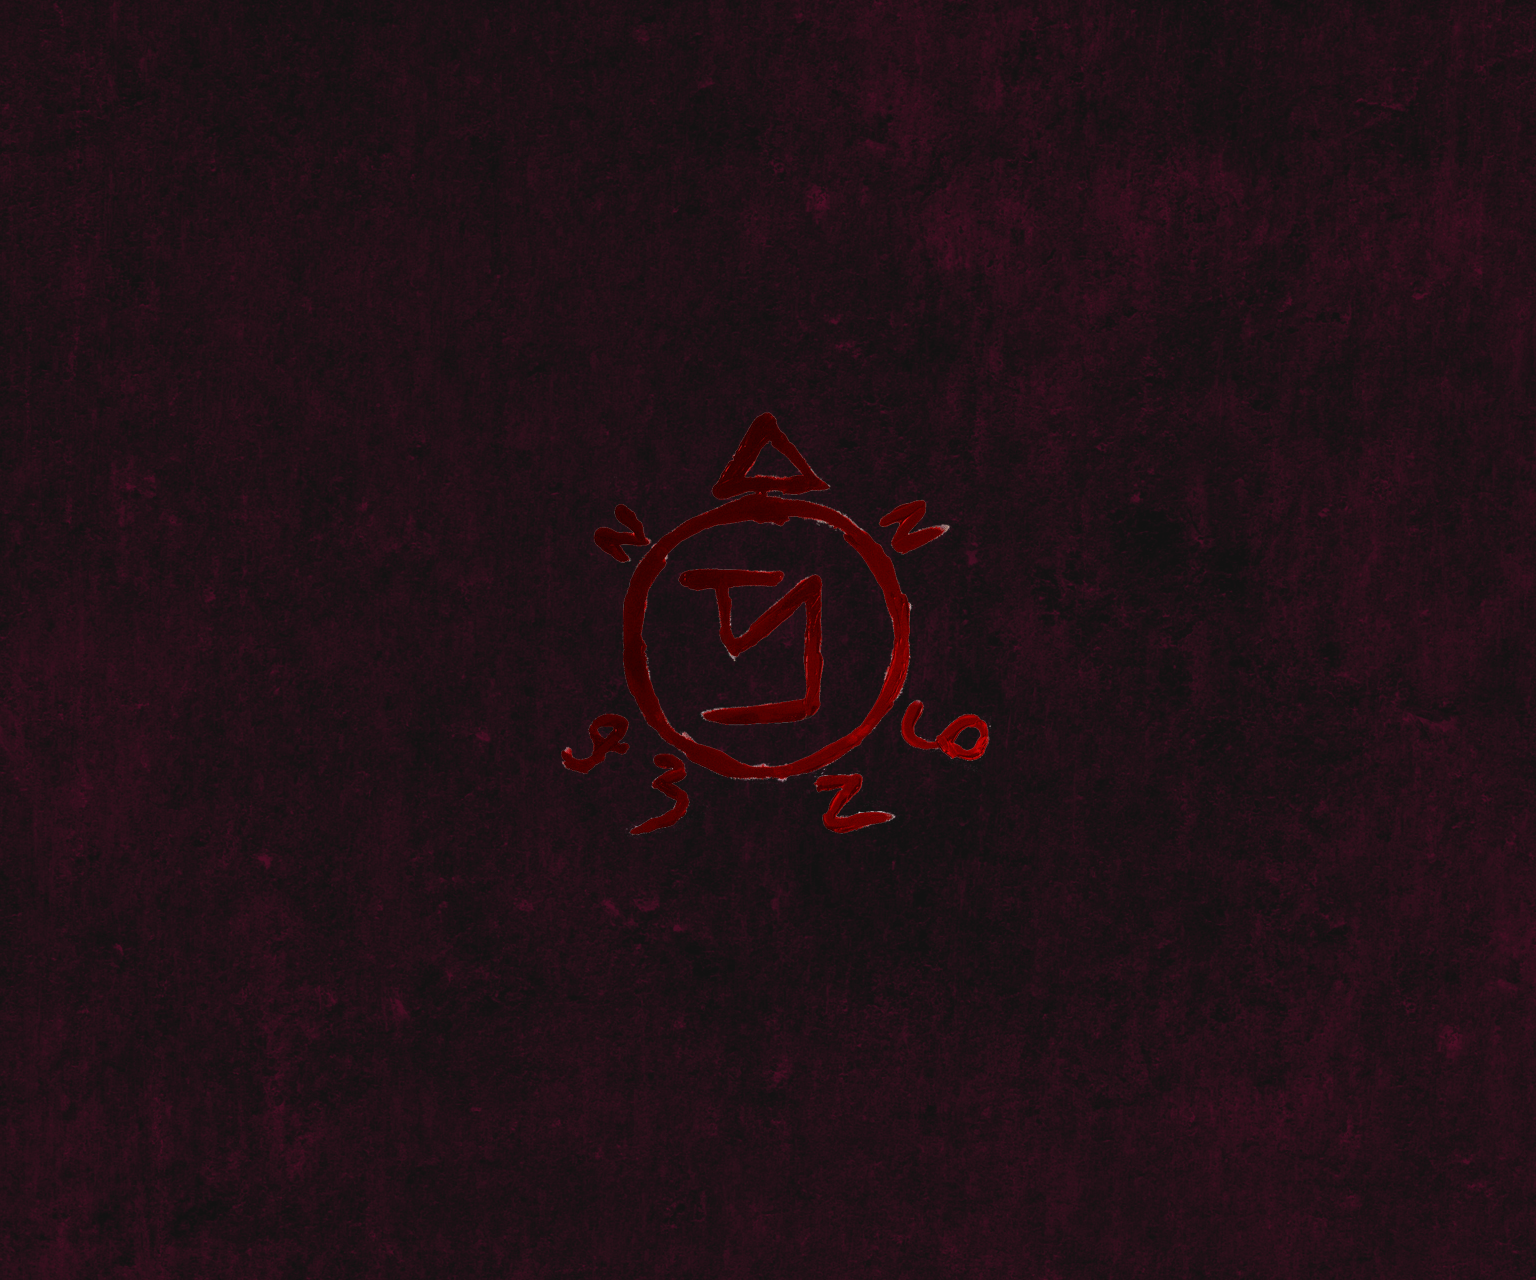 Supernatural Phone Wallpaper - WallpaperSafari